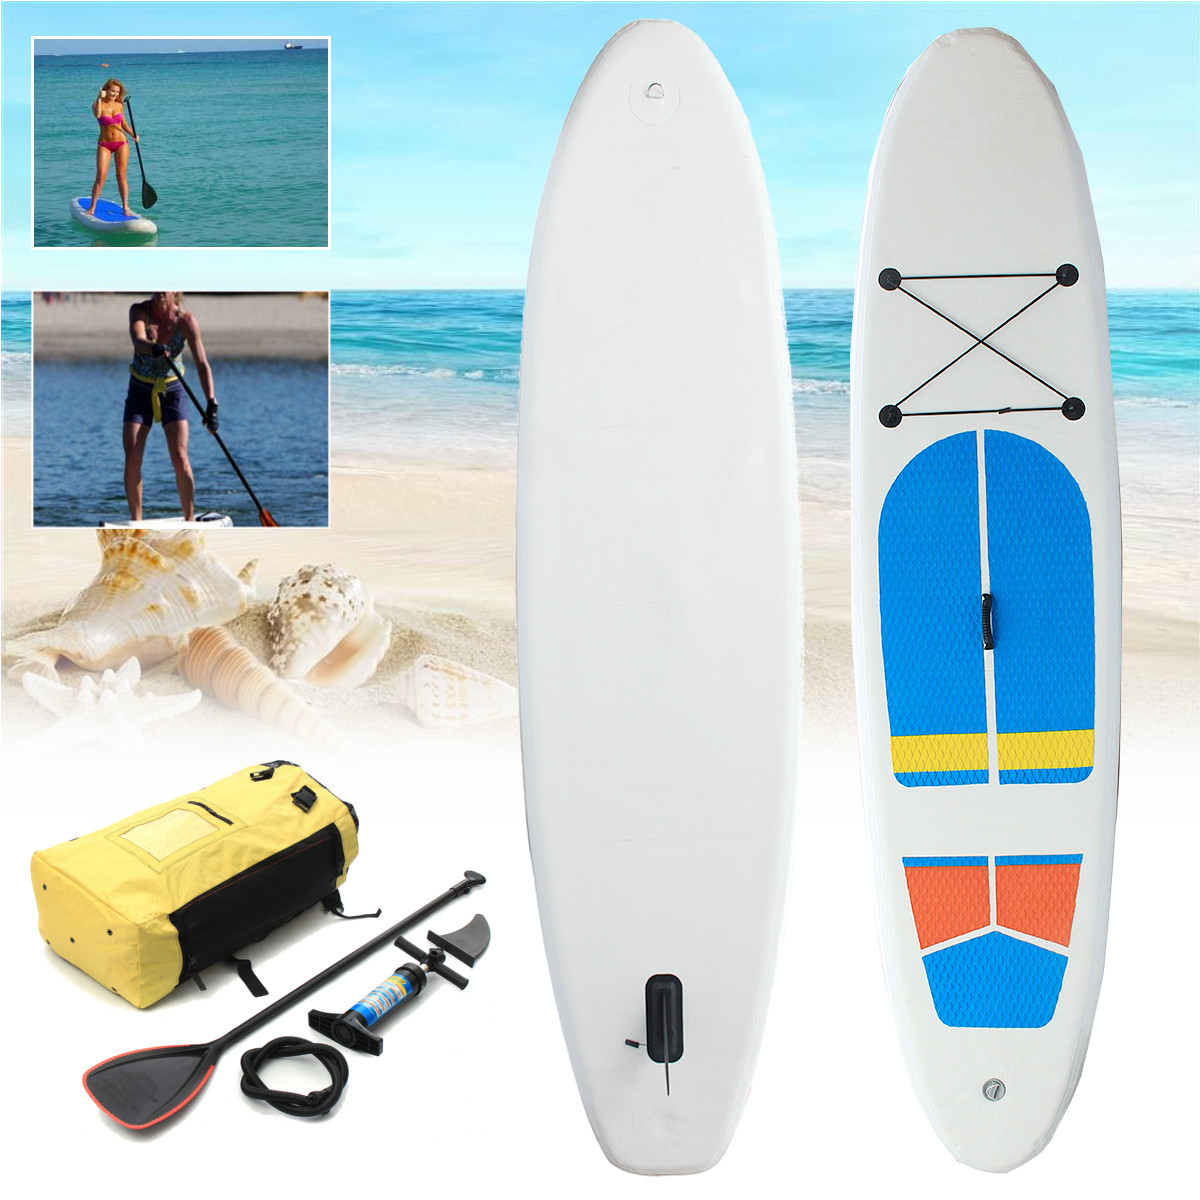 10ft x 2.5ft SUP Stand Up Paddle Surfboard  Inflatable Board with Travel Backpack Hand Pump for Surfing/ Aqua Yoga/Fishing